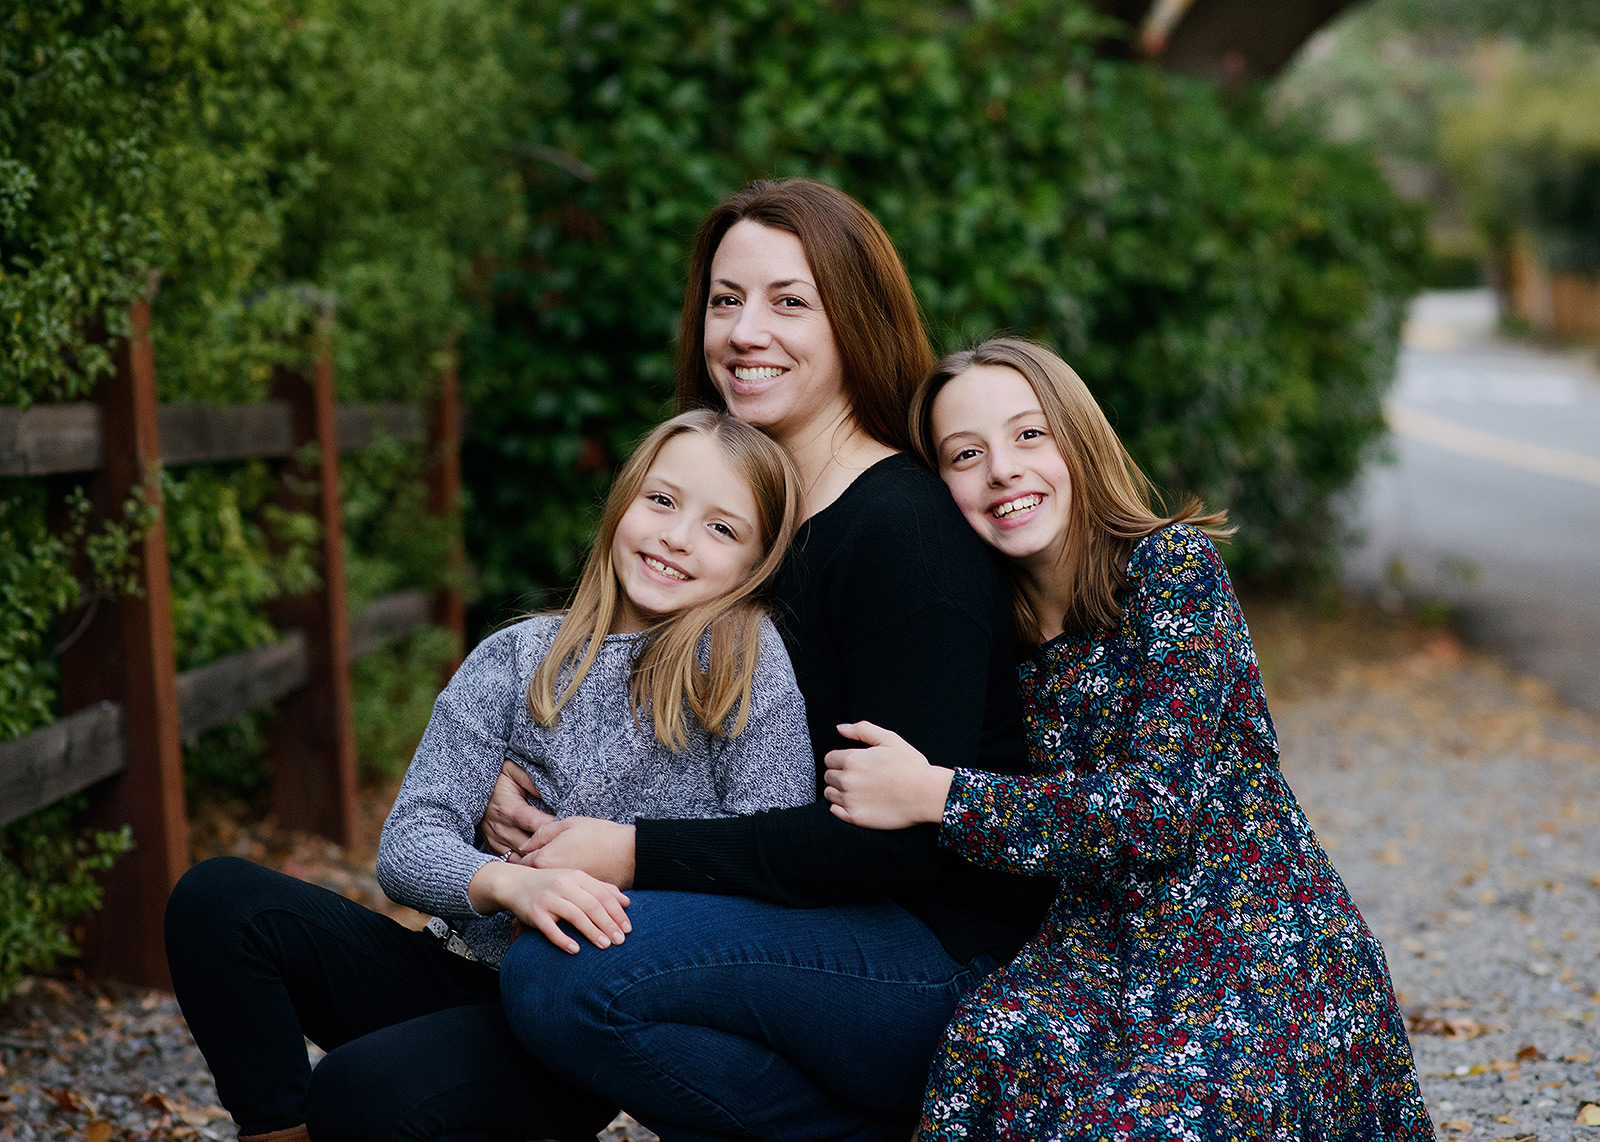 Mom and daughters hugging outdoors near trees in Saratoga